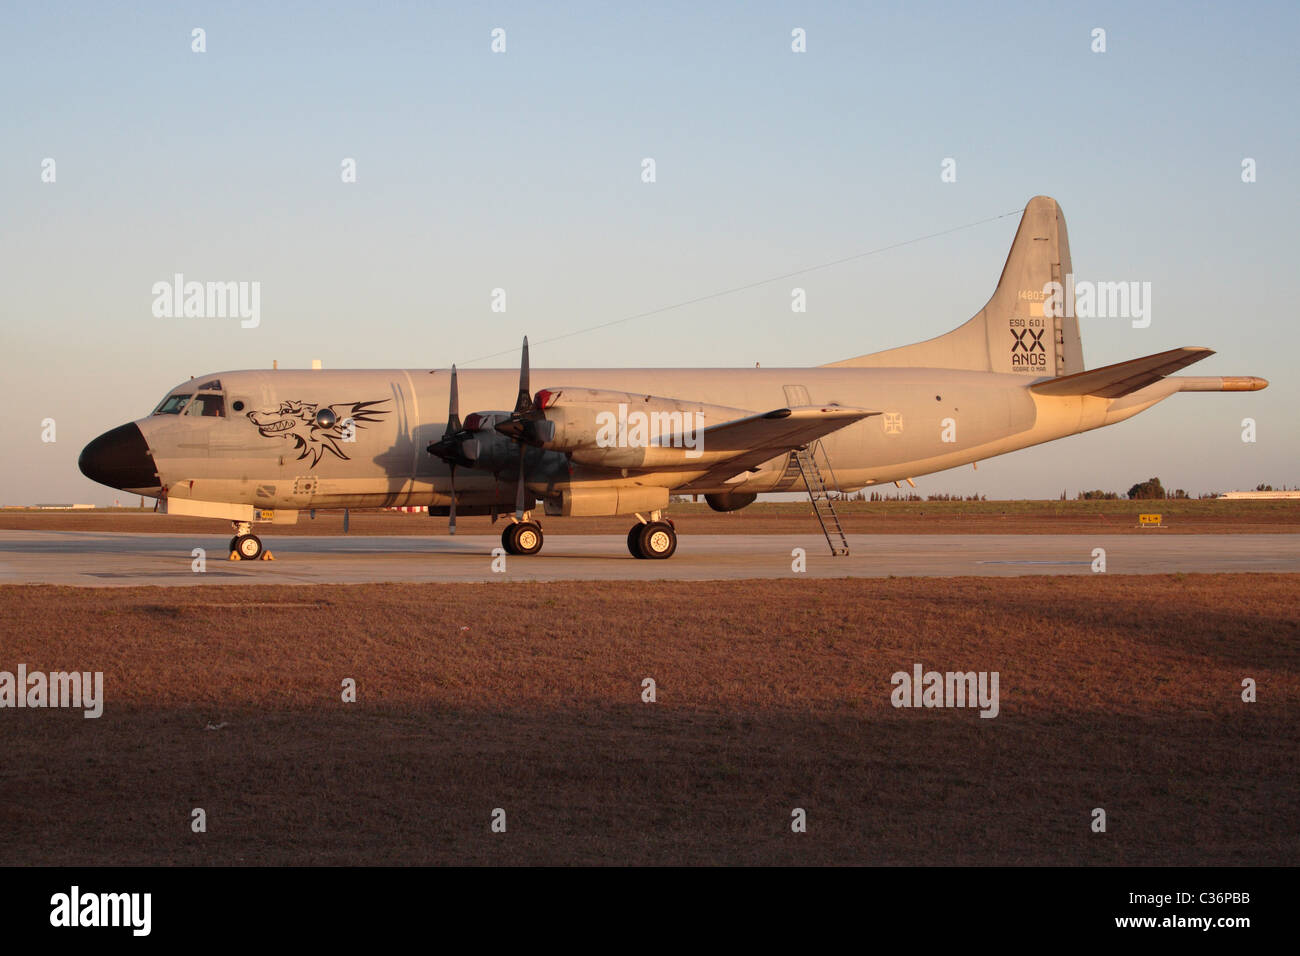 Lockheed P-3P Orion maritime patrol plane of the Portuguese Air Force - Stock Image